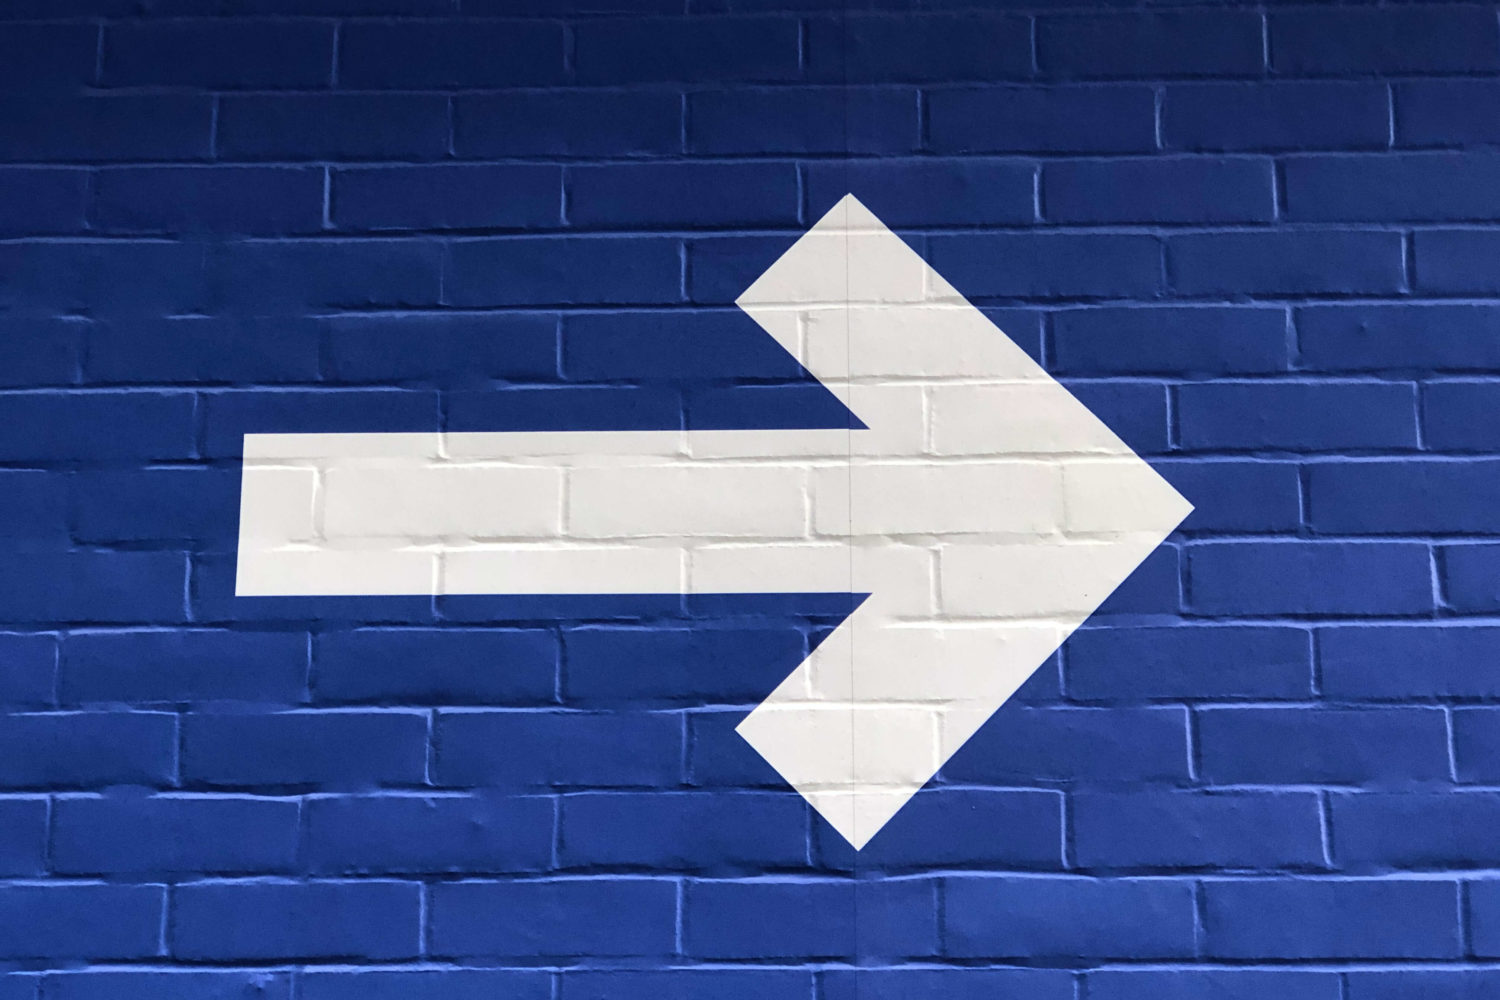 white arrow pointing to the right on blue brick background